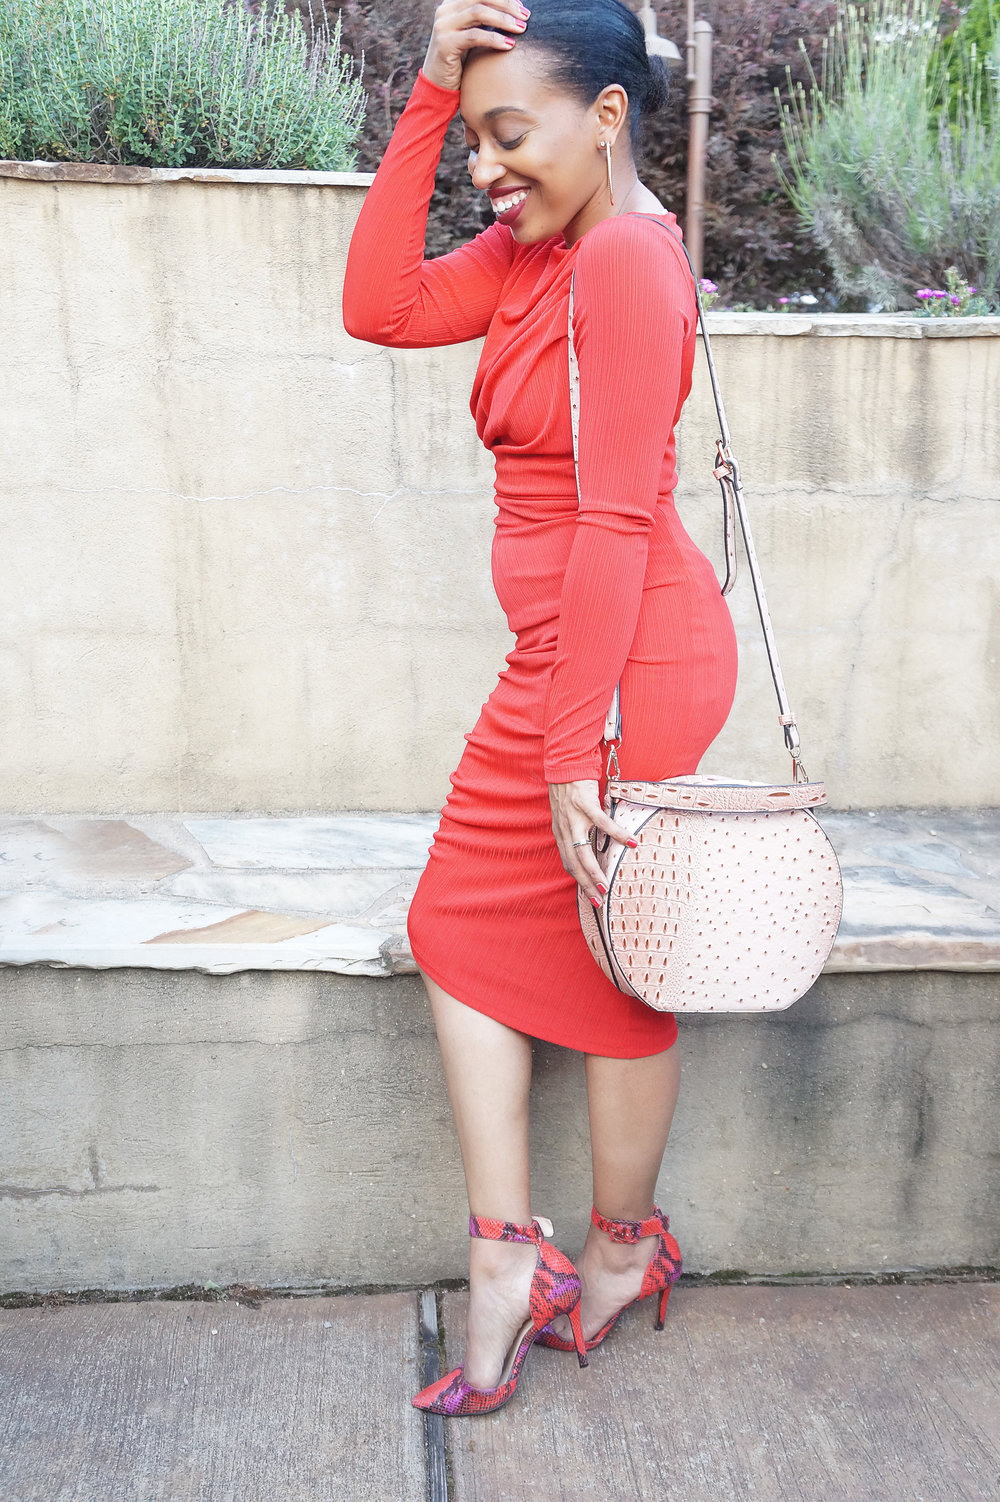 Andrea Fenise Memphis Fashion Blogger shares outfit H&M dress